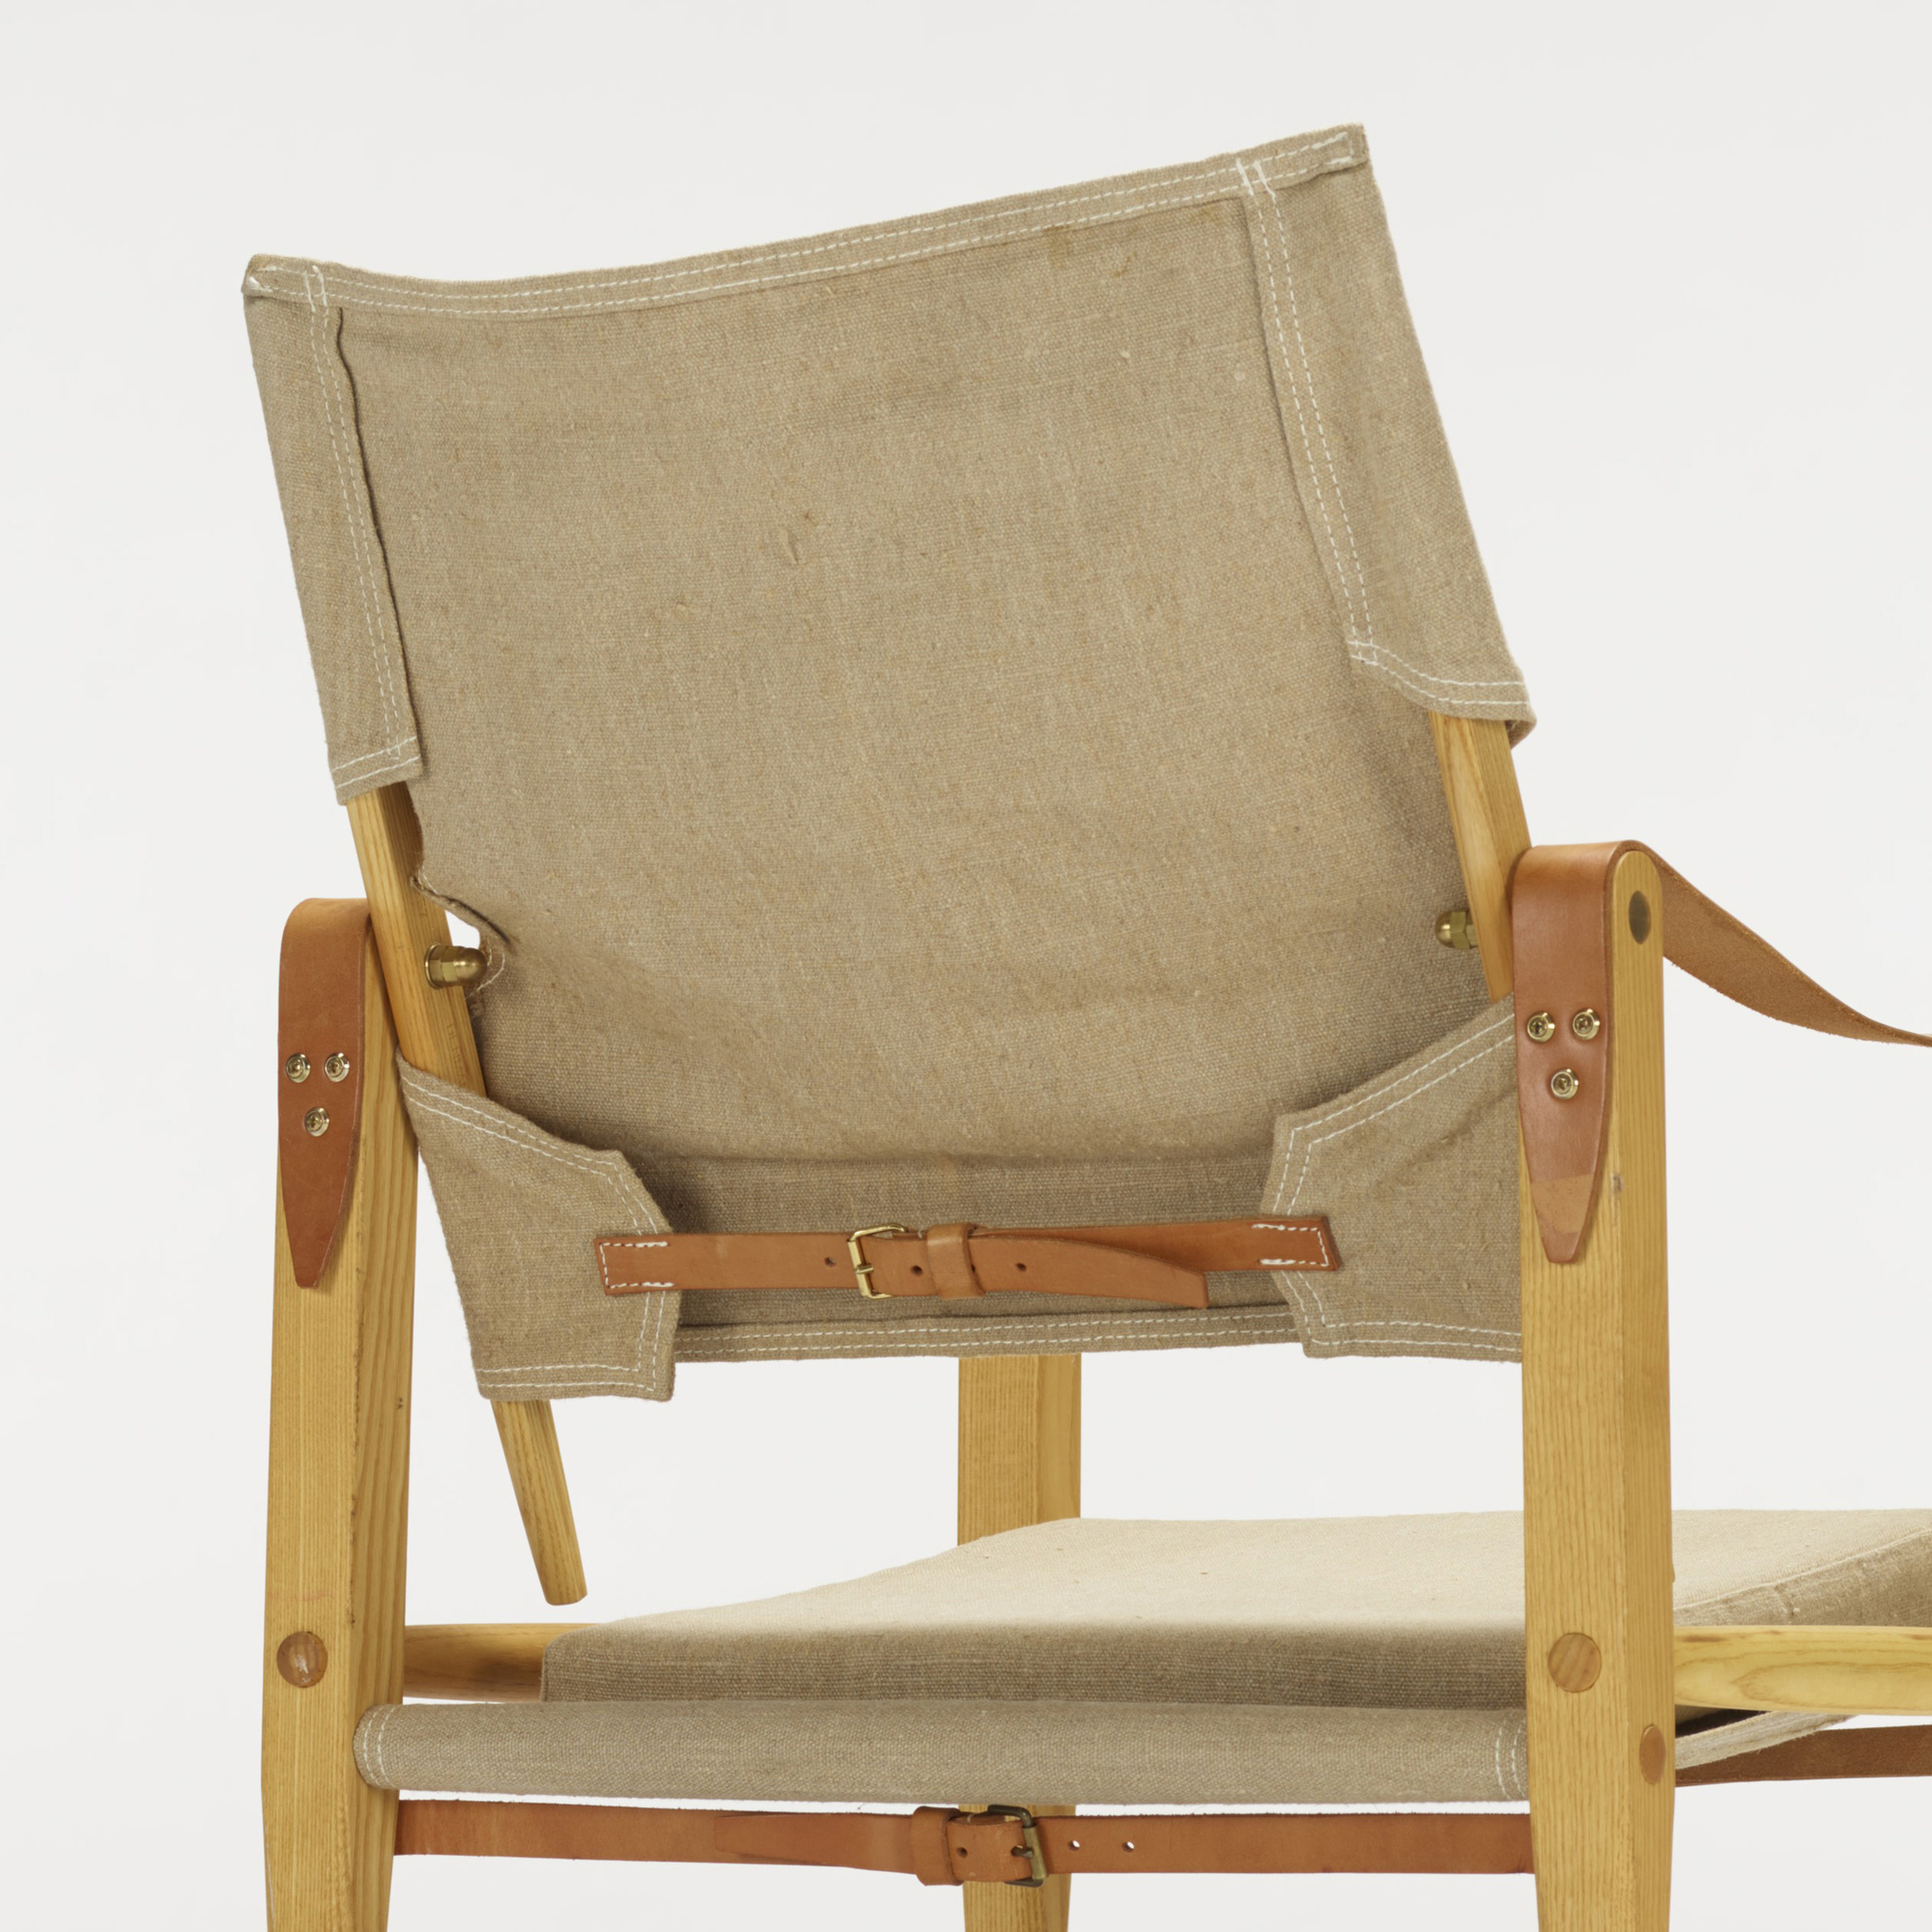 Safari Chairs 185 Kaare Klint Safari Chairs Pair Scandinavian Design 9 May